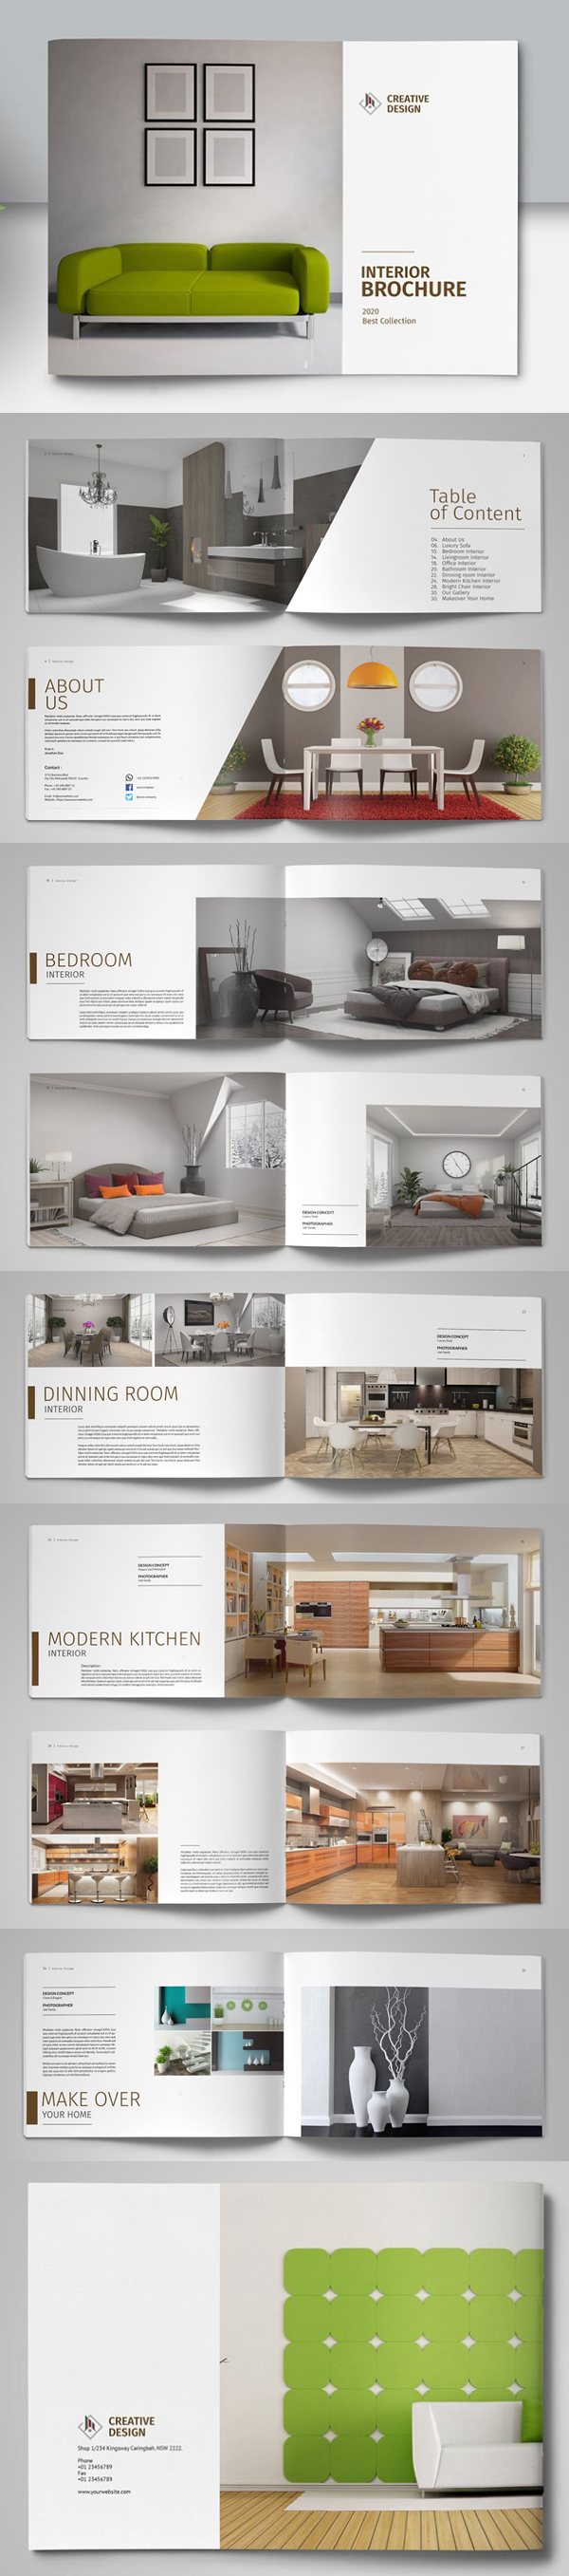 Brochure Catalog Design Template